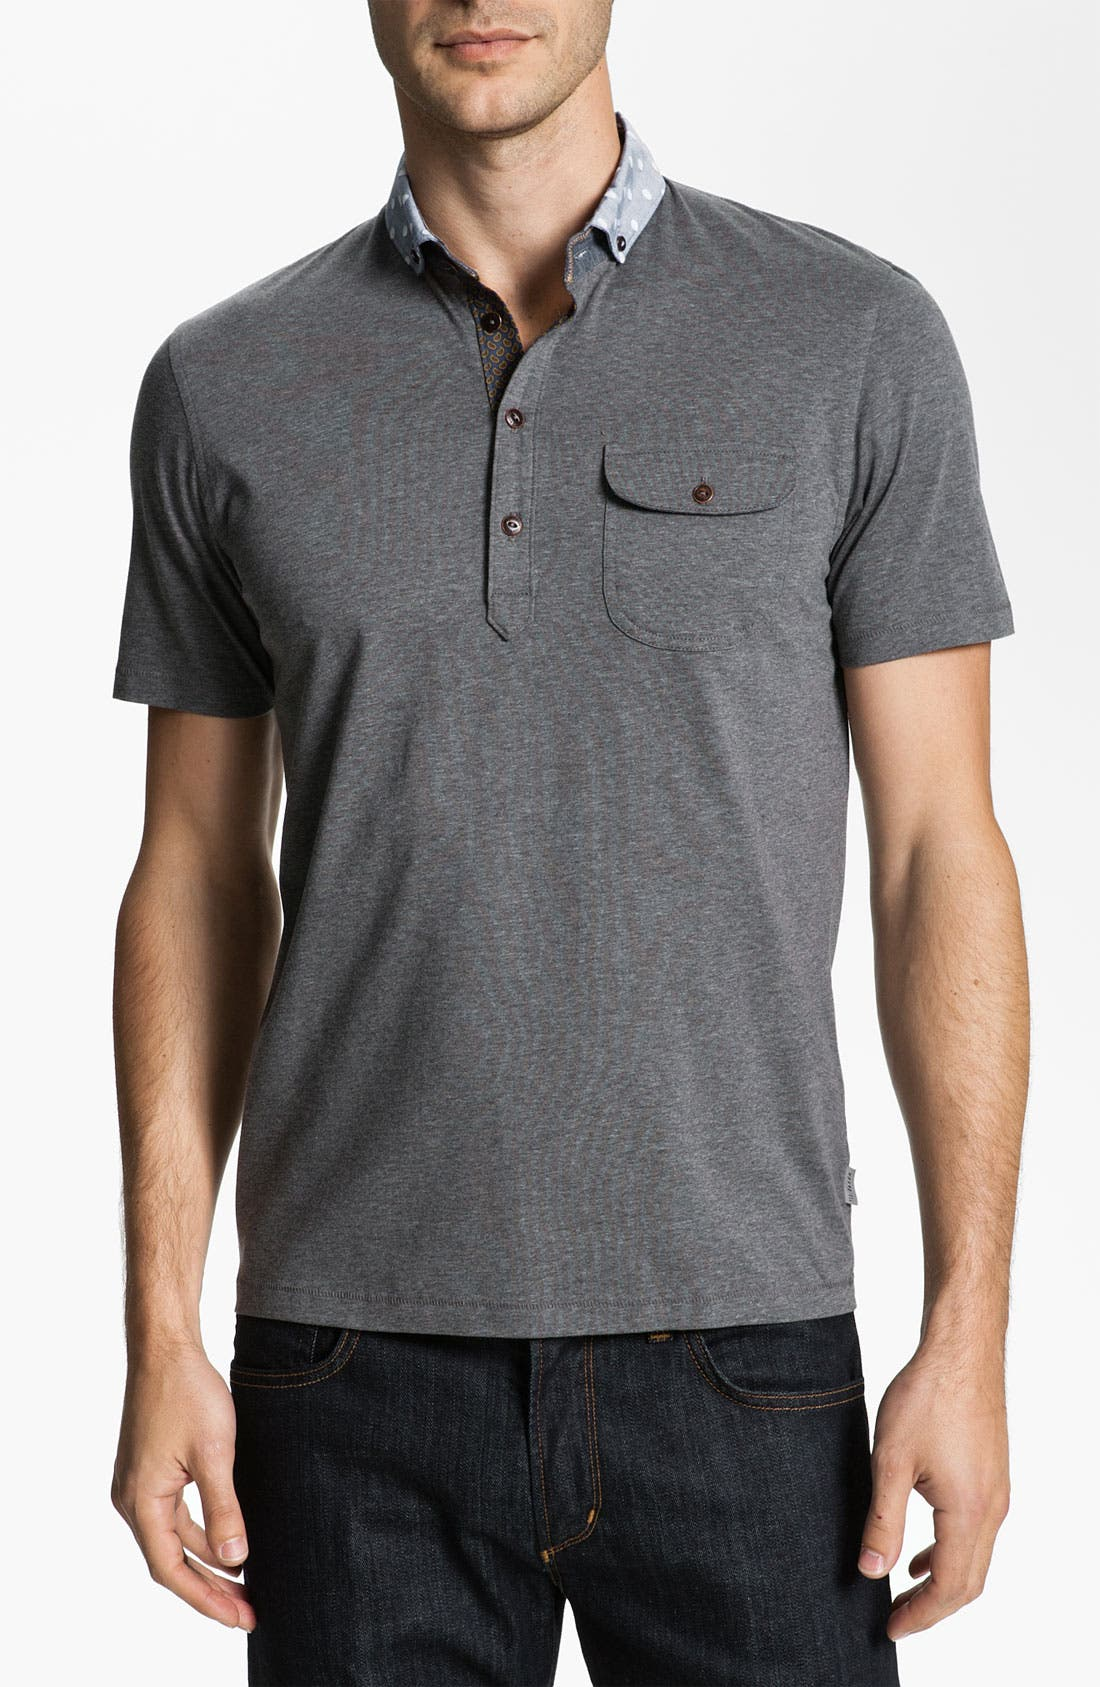 Alternate Image 1 Selected - Ted Baker London 'Saturdy' Woven Collar Polo